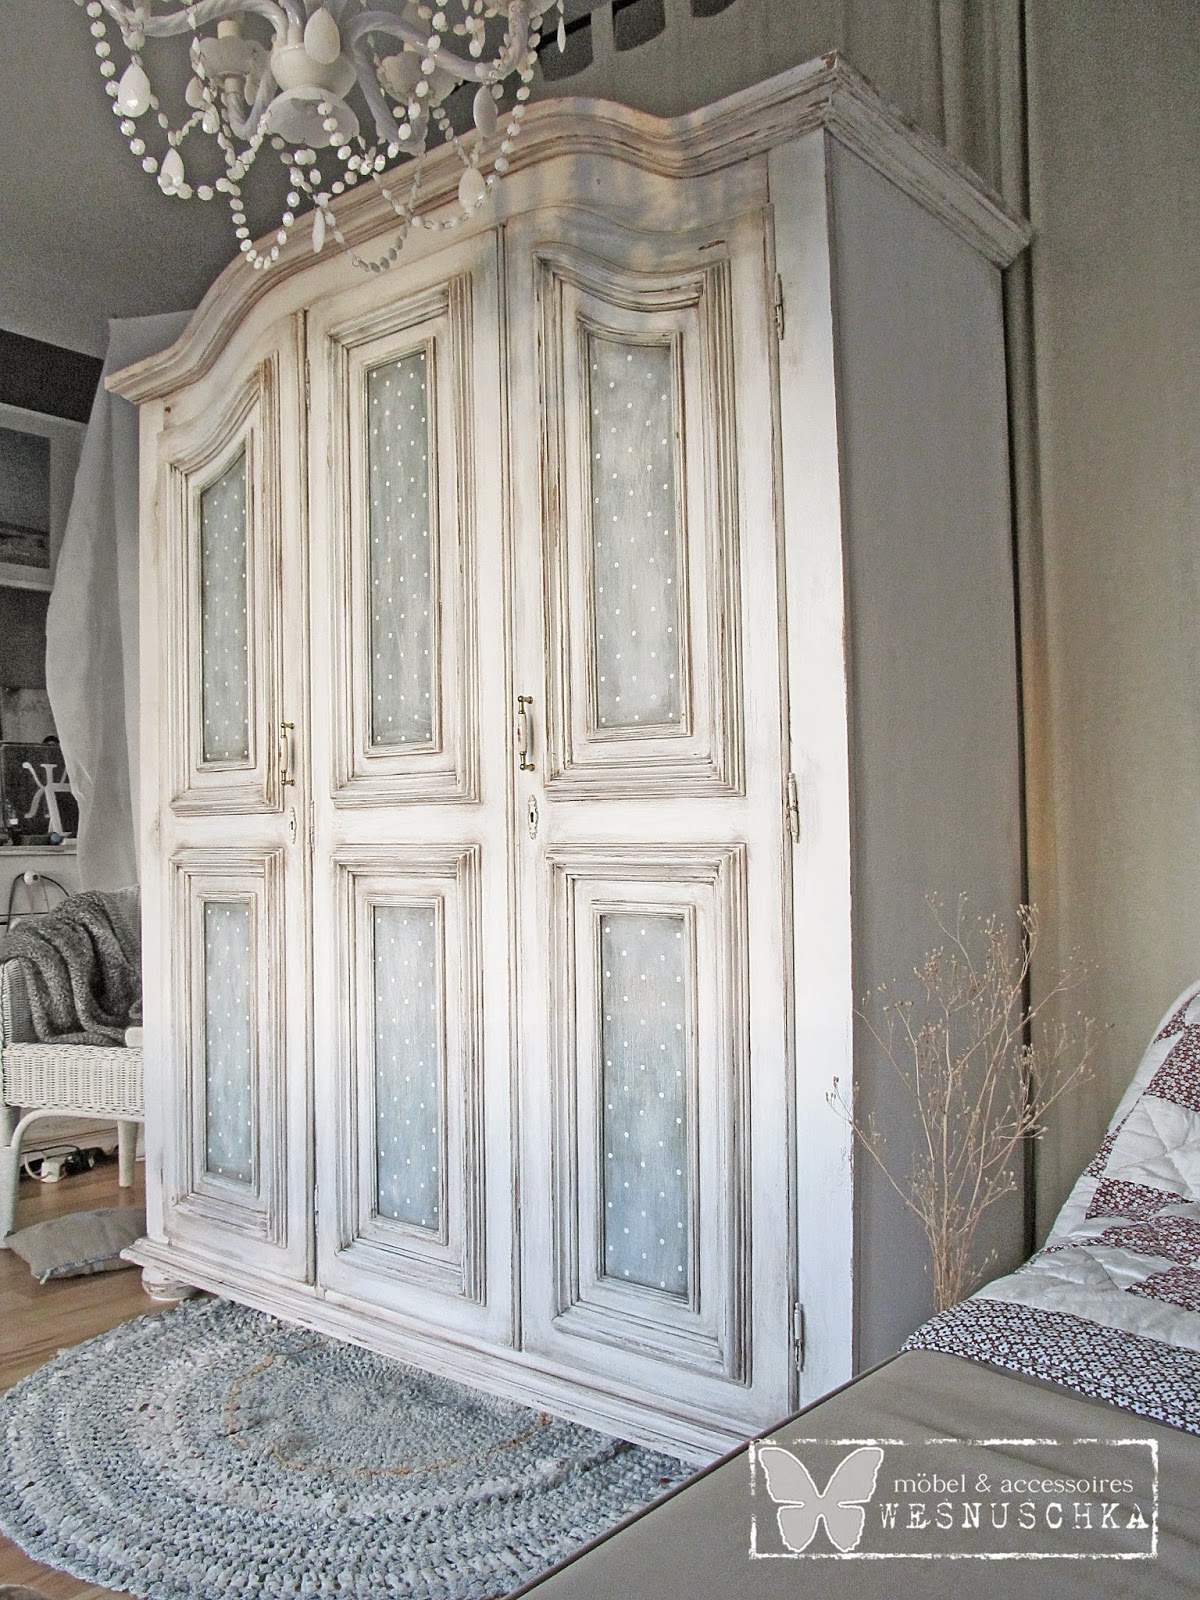 schrank shabby chic free with schrank shabby chic trendy sette design how to shabby chic. Black Bedroom Furniture Sets. Home Design Ideas